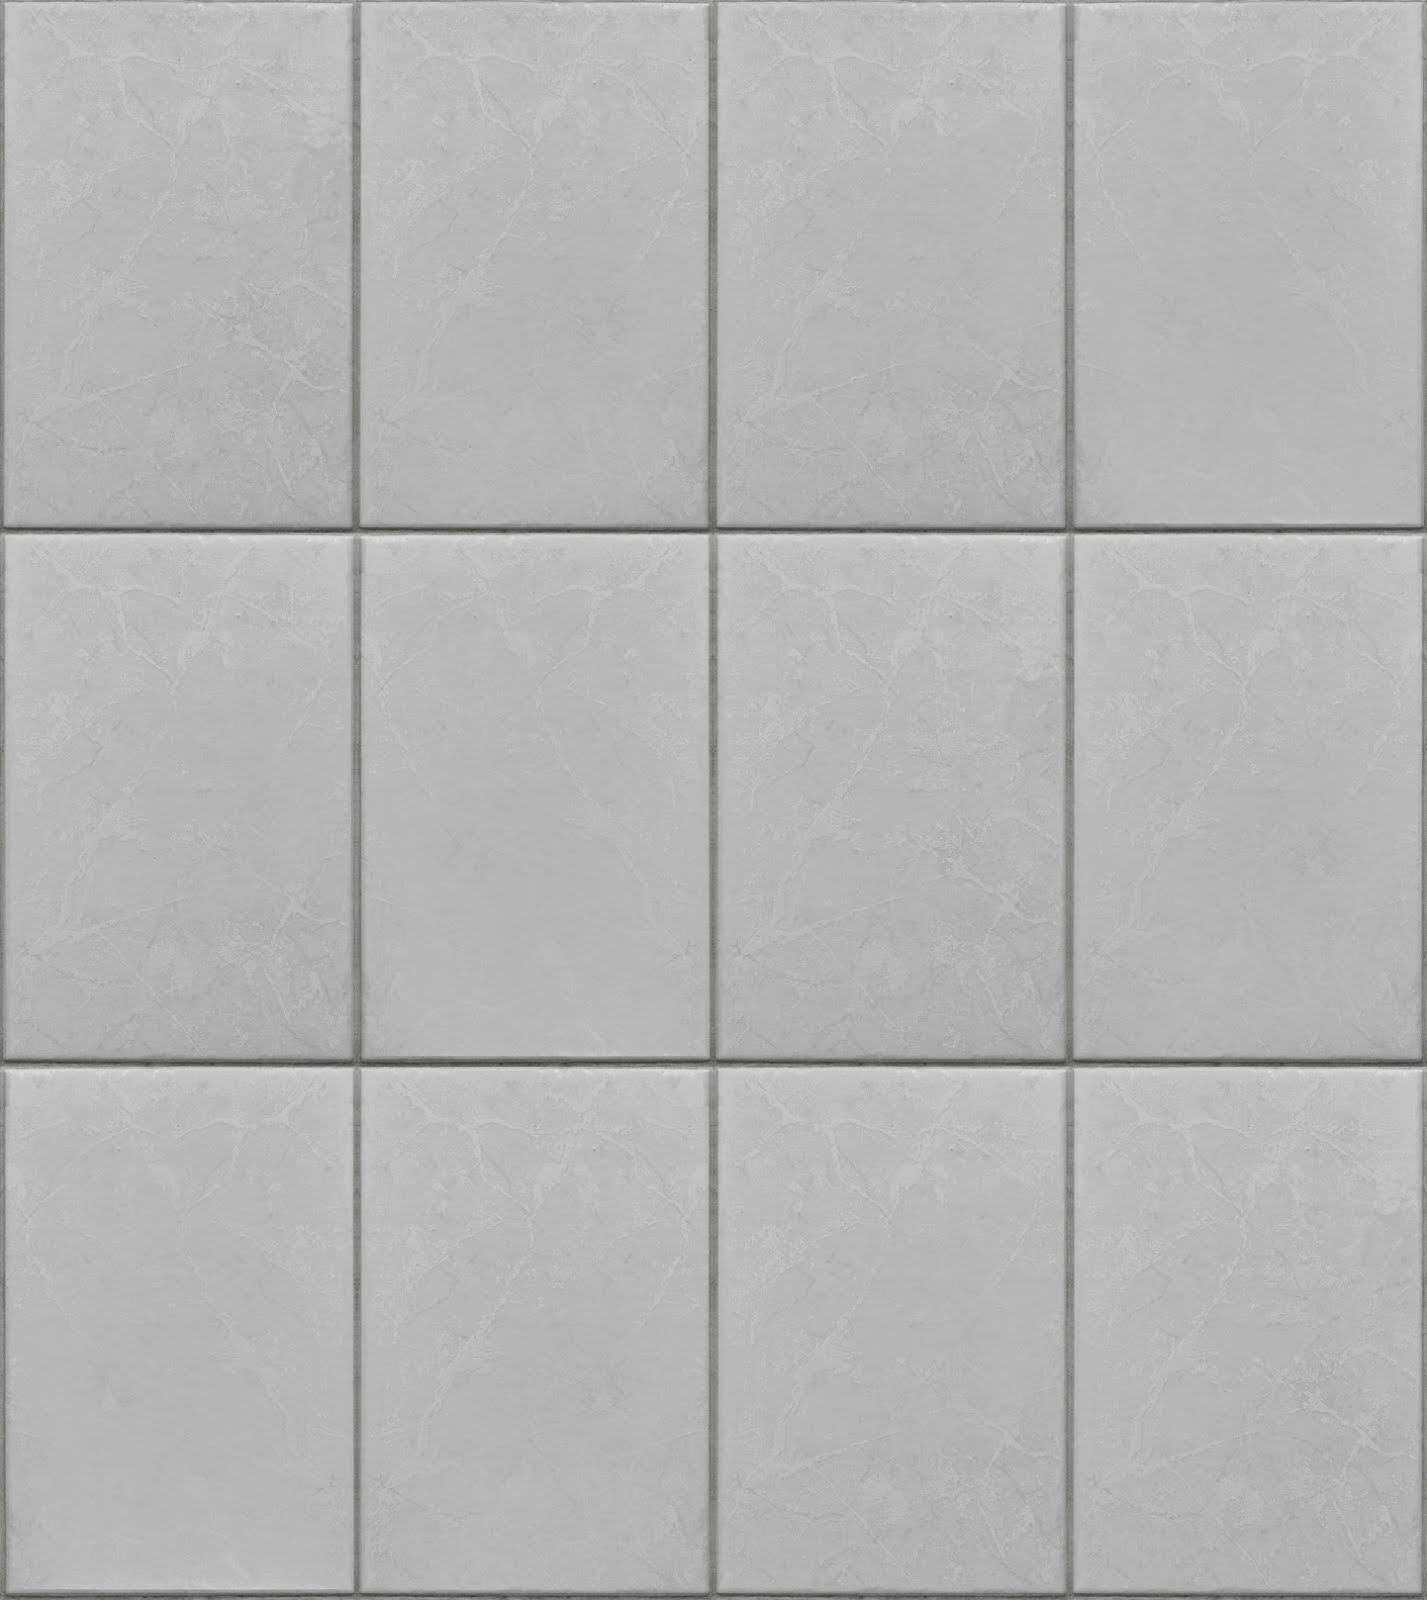 Bathroom tile floor